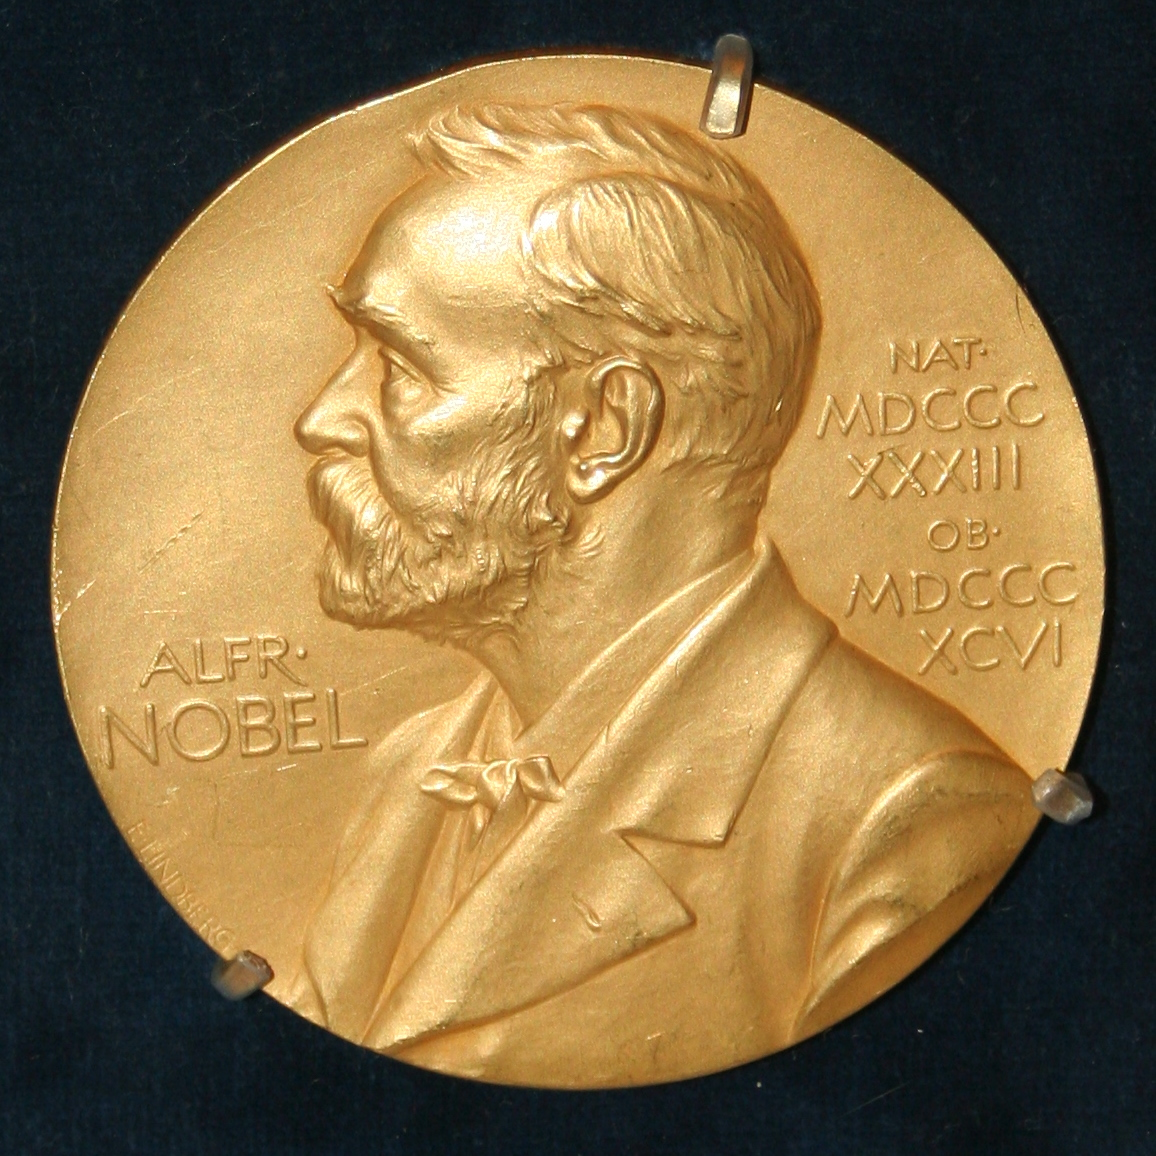 Two Nobel prizes in literature to be awarded next week